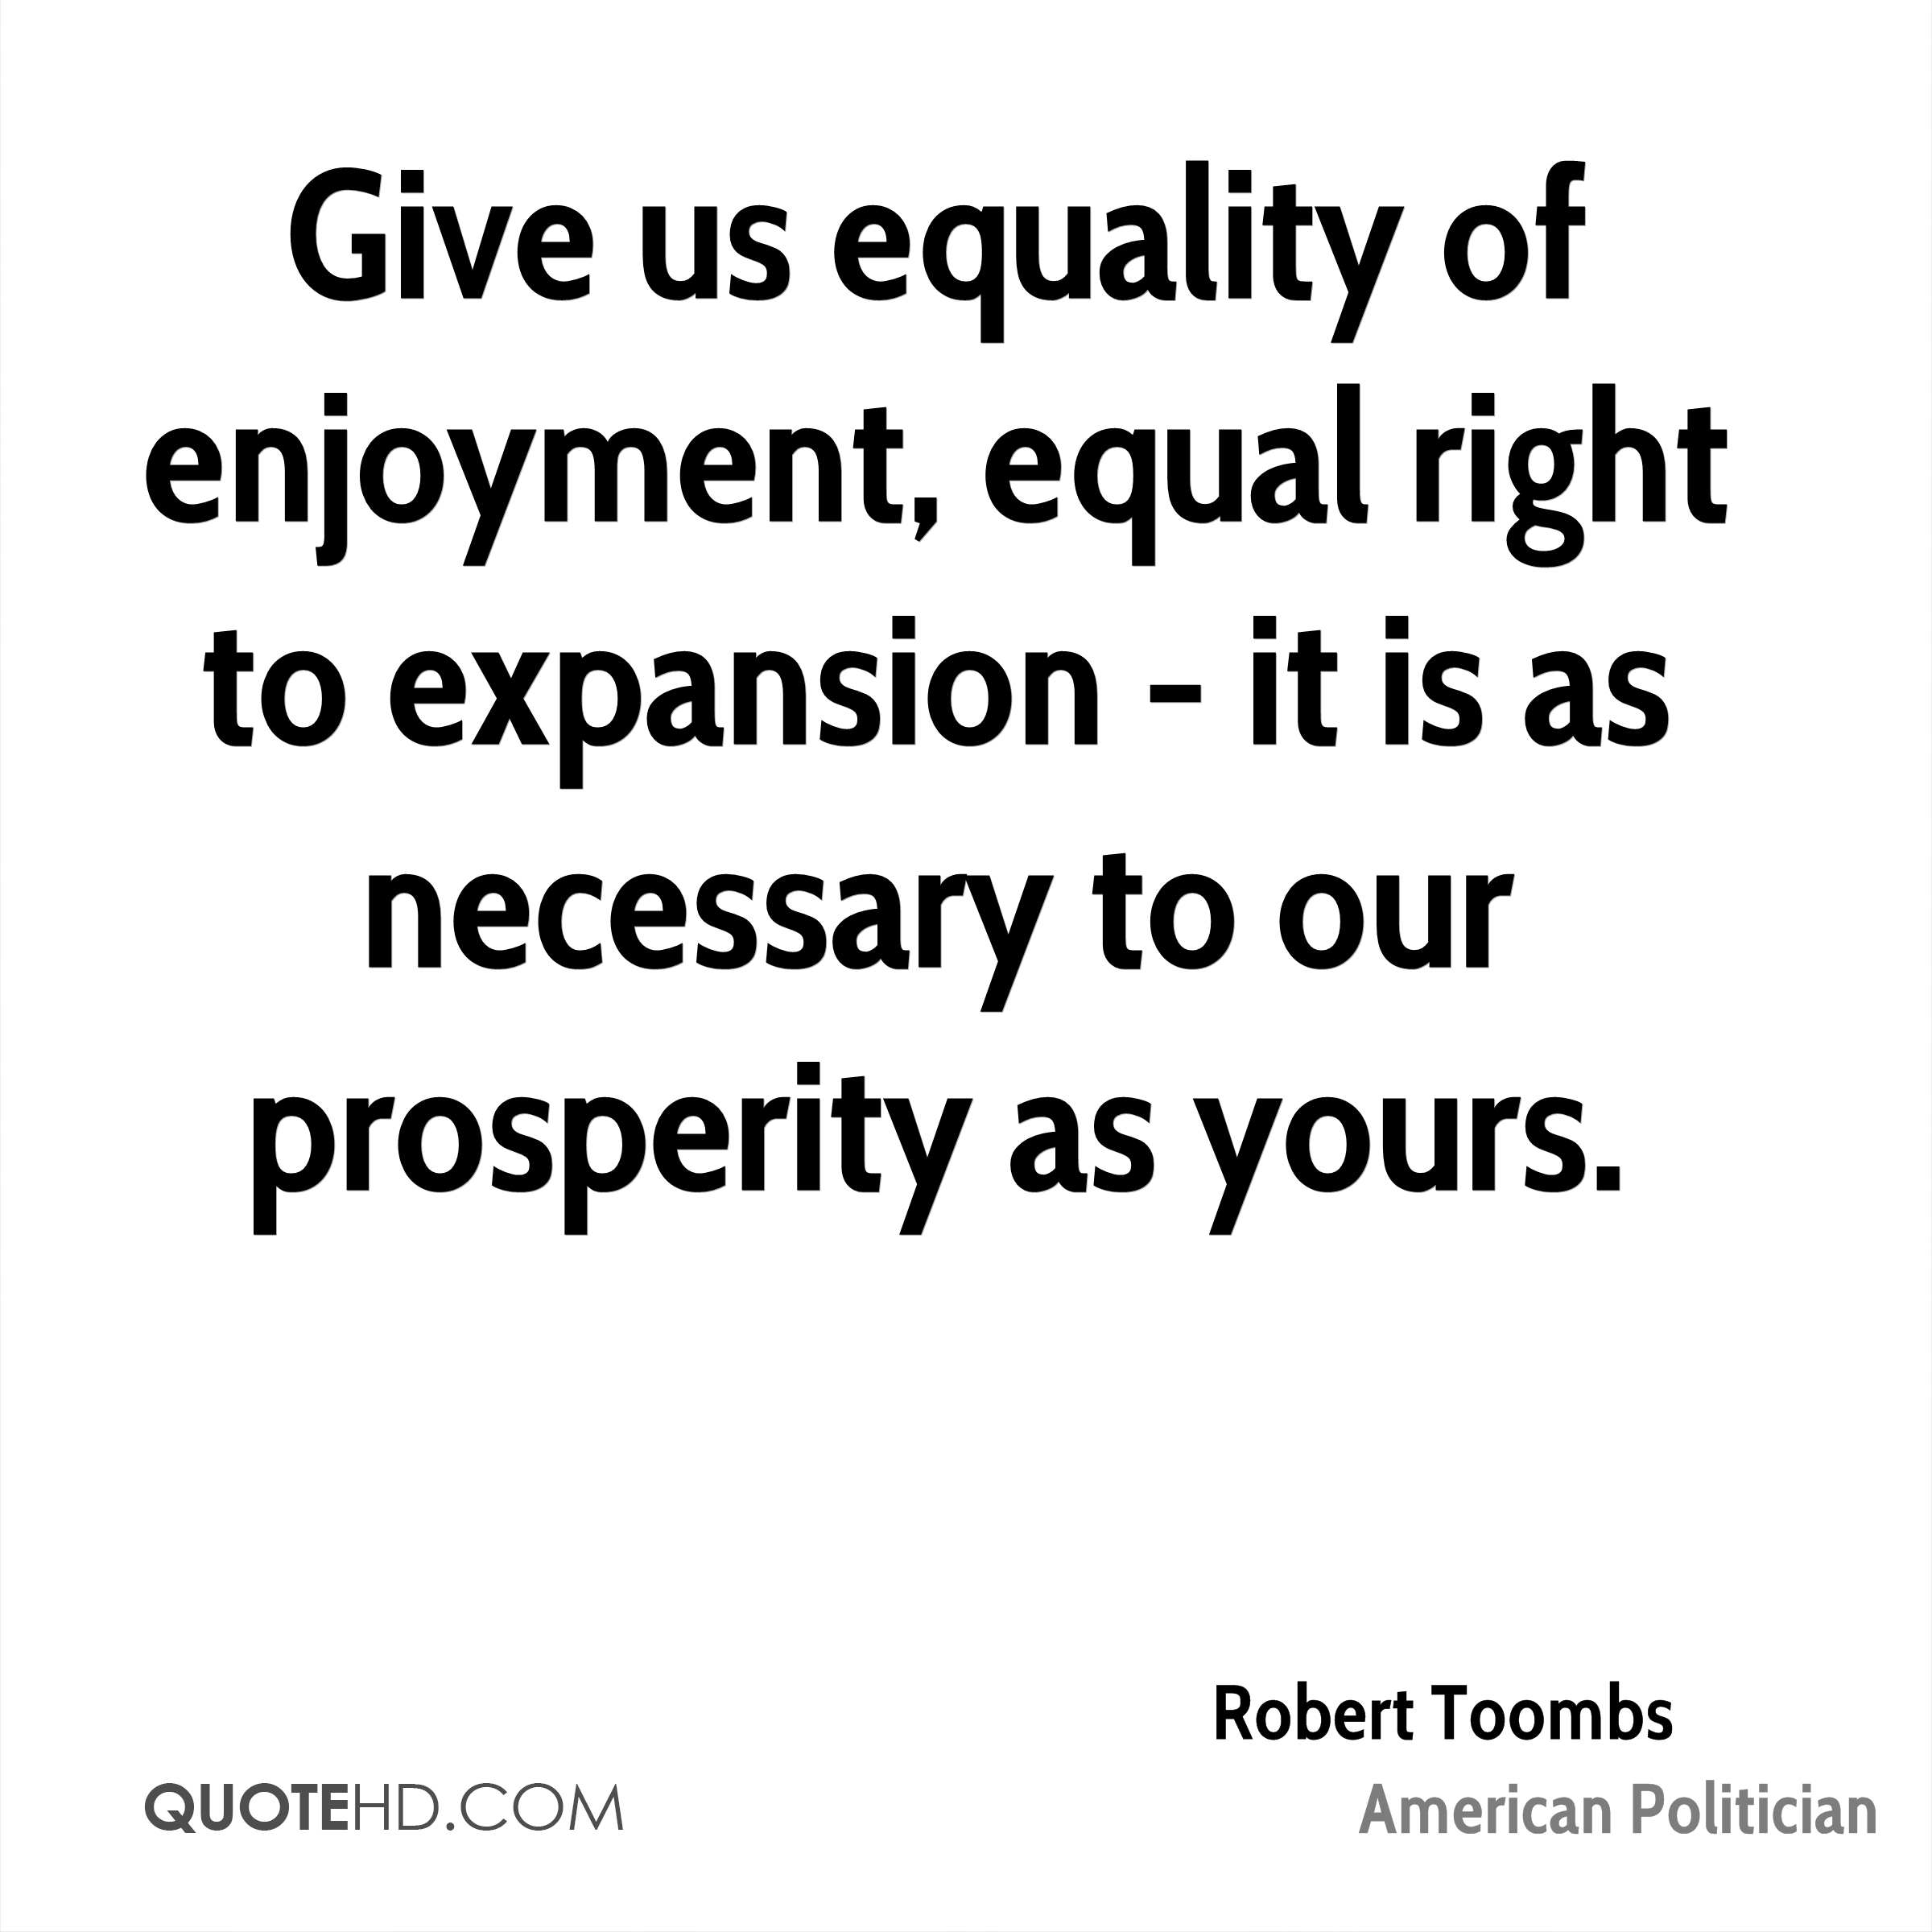 Give us equality of enjoyment, equal right to expansion - it is as necessary to our prosperity as yours.